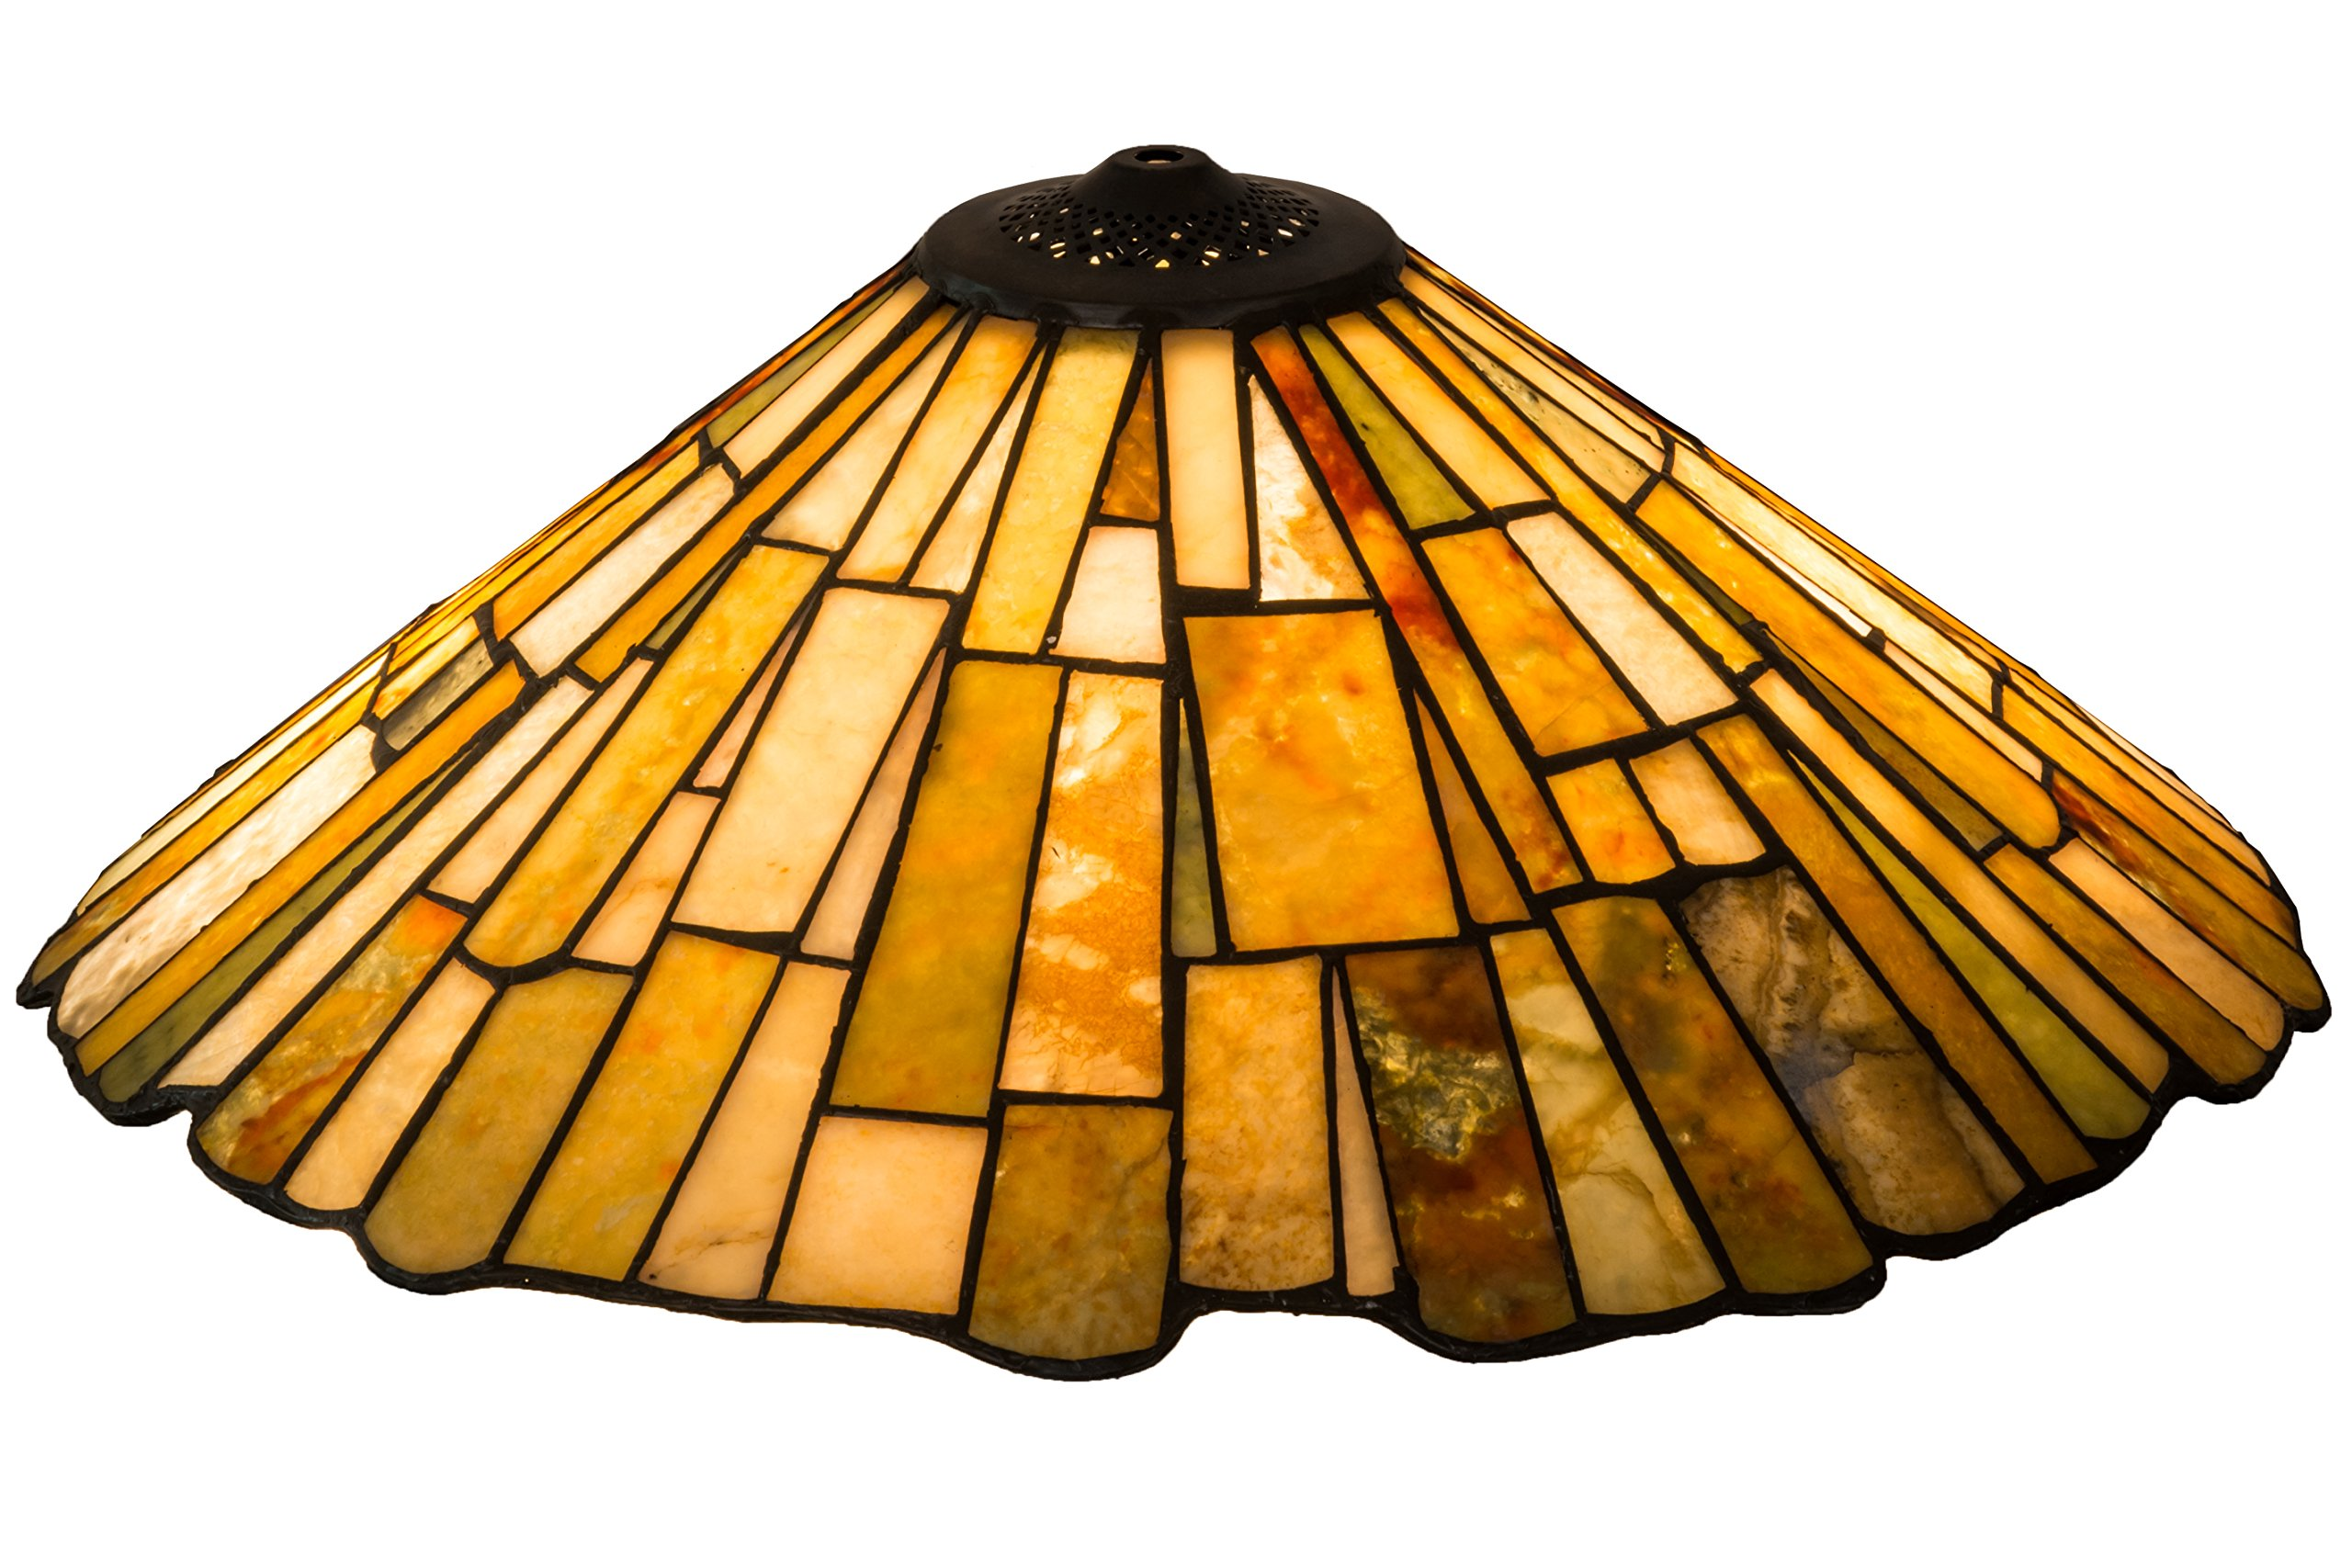 Meyda Home Decorative Art Stained Glass Lamp Fixture21''W Delta Jadestone Replacement Shade by Meyda